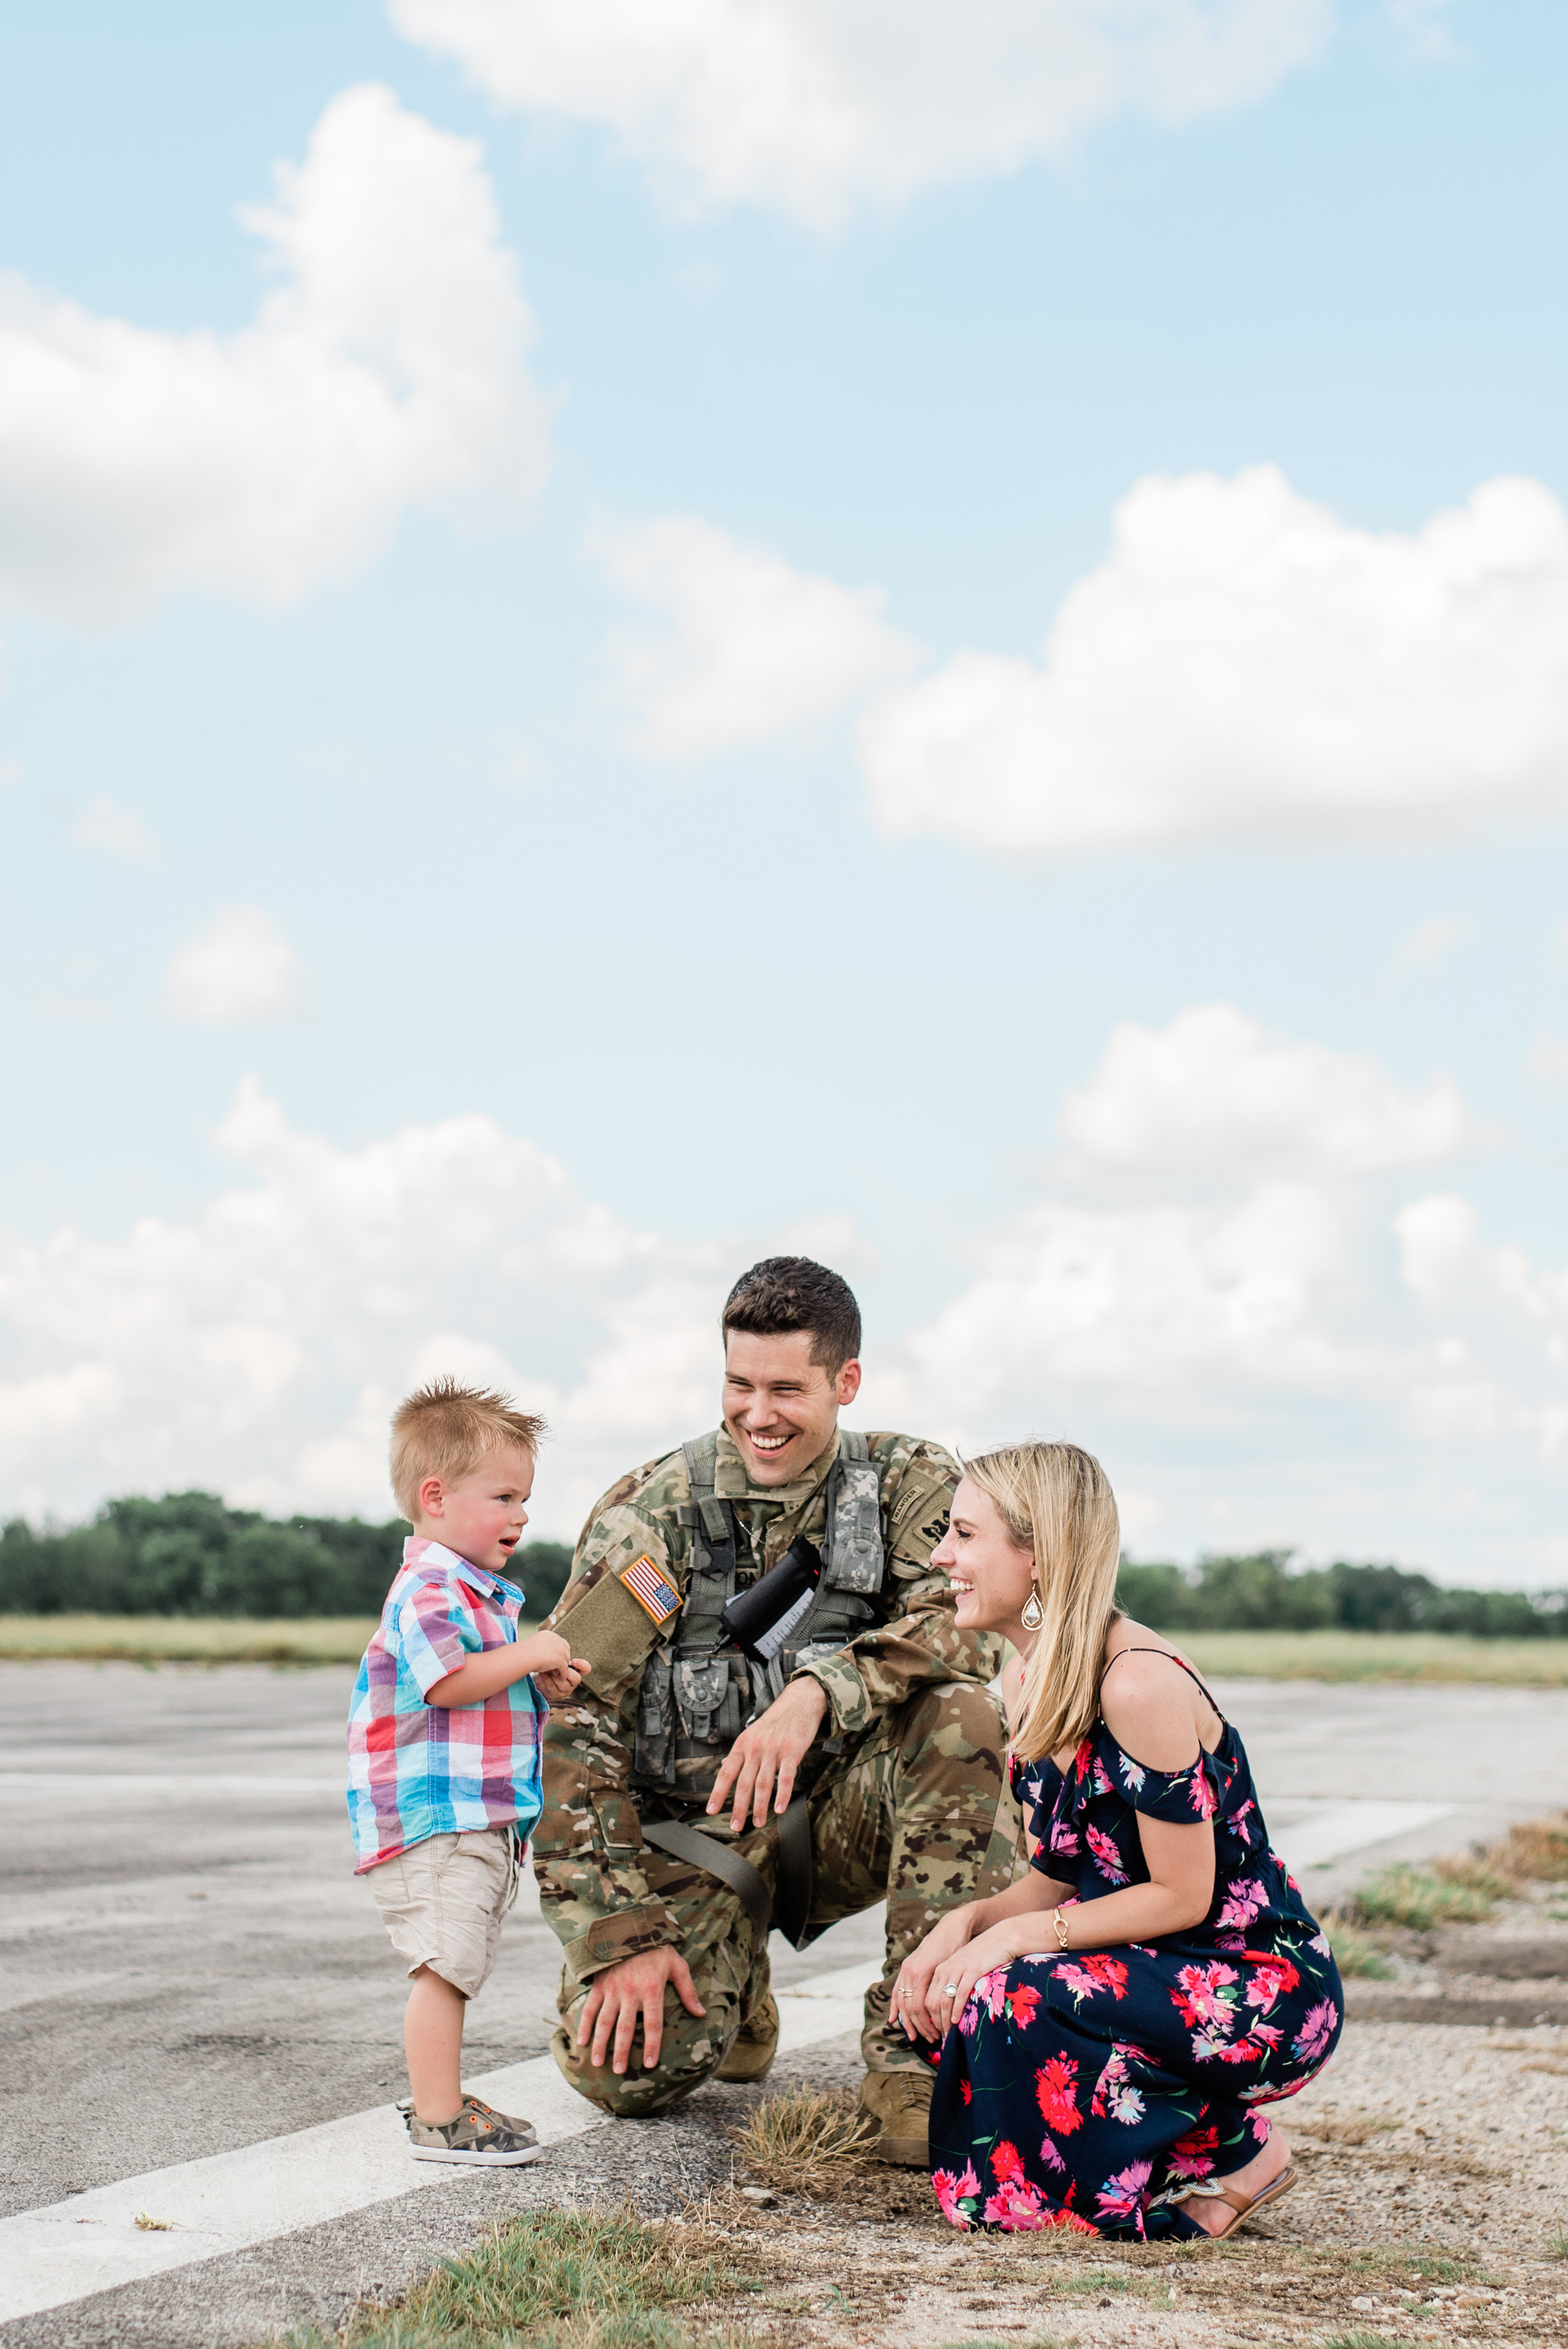 Arrington Flight School Family Day! - Family days are always fun to photograph. It's like even though we know our spouses leave to go fly helicopters everyday it doesn't really sink in that they ACTUALLY fly helicopters until you see them fly in on family day!This family was an absolute joy to meet and I think it's safe to say that their little guy, Hunter, is a big fan of helicopters! Maybe he'll grow up to be a helicopter pilot just like his daddy!Check out all the cuteness below!